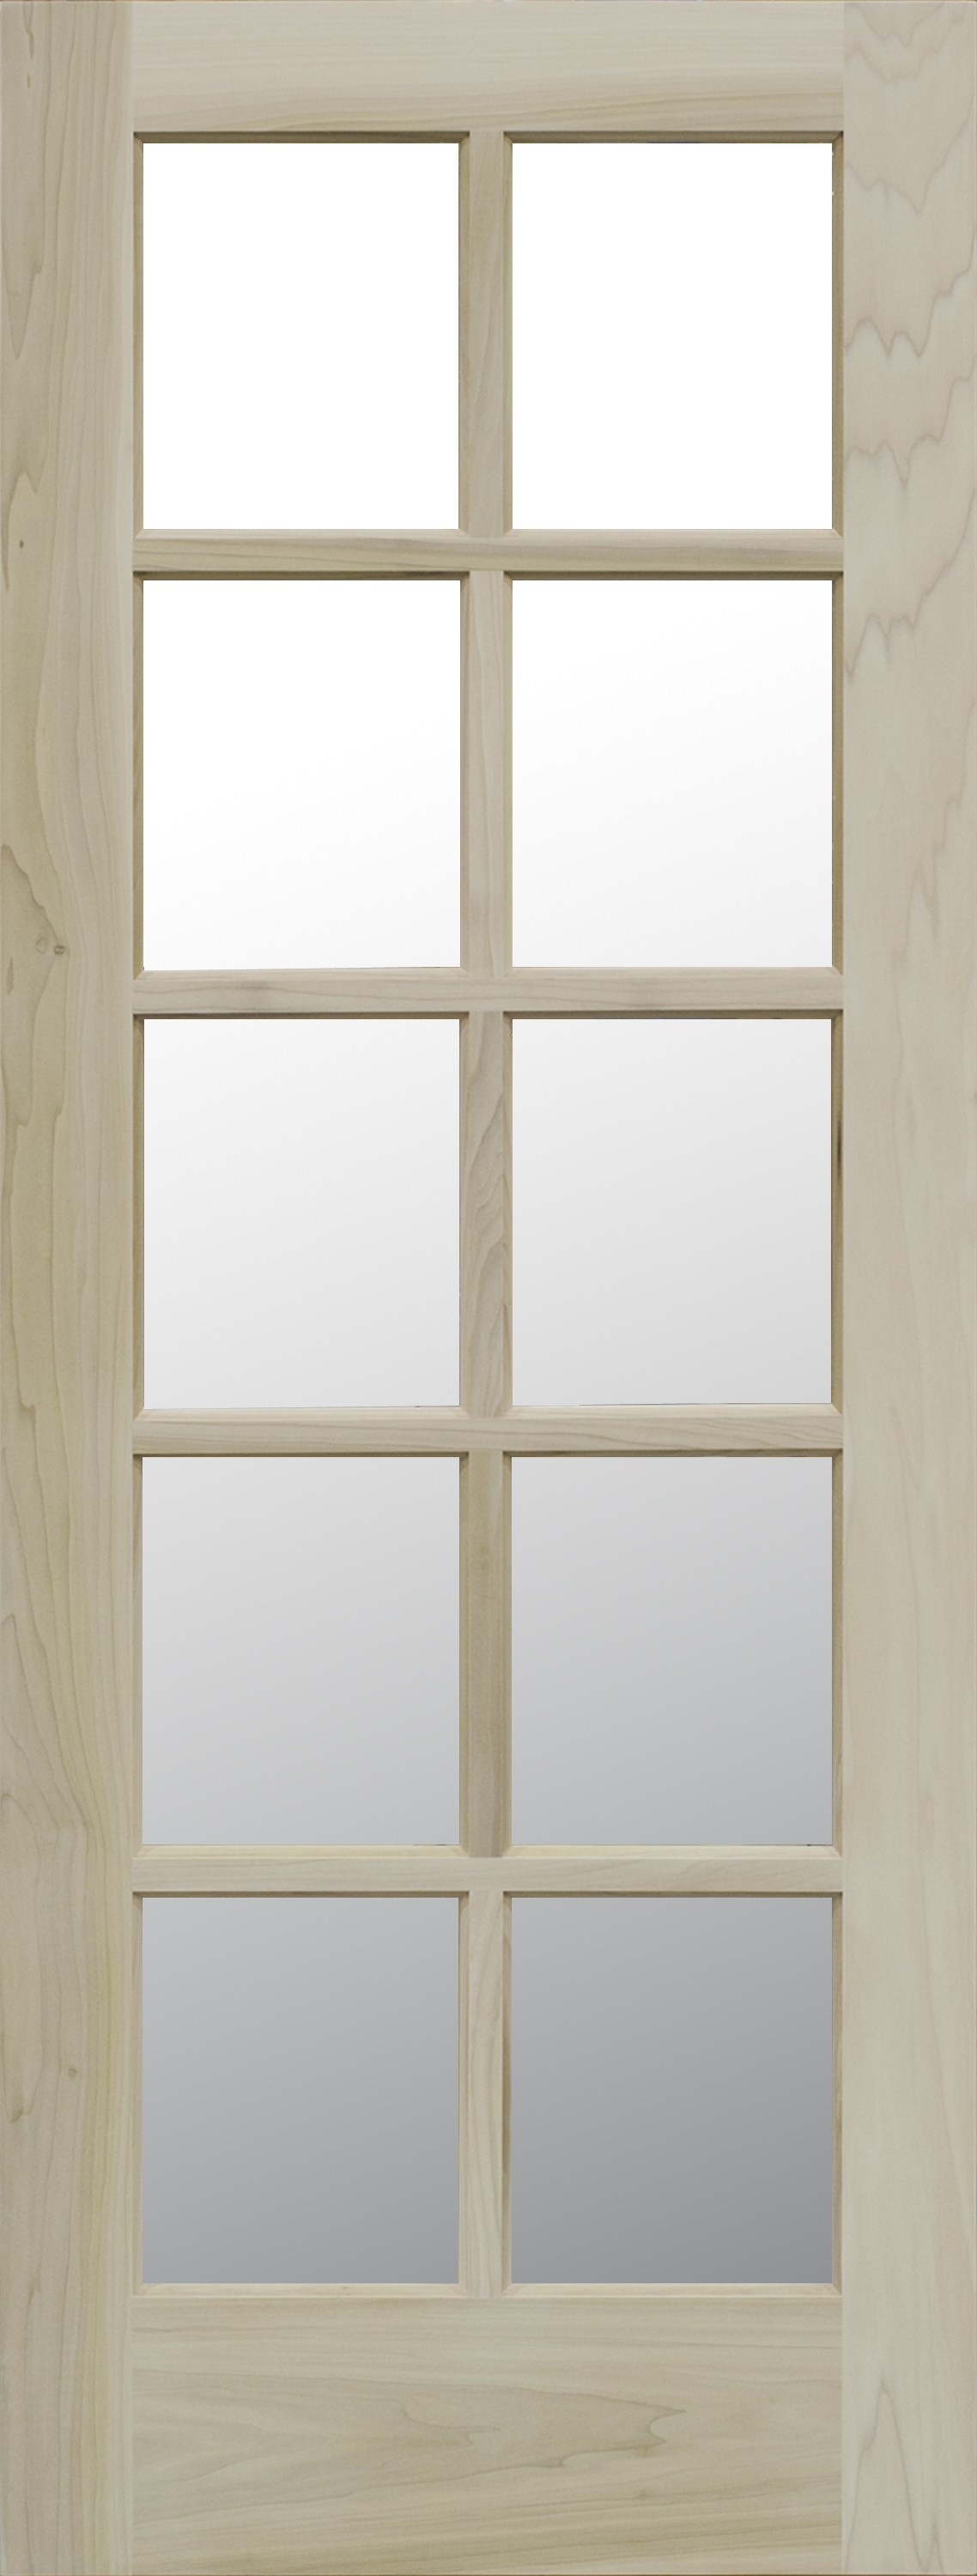 View All French Door Styles